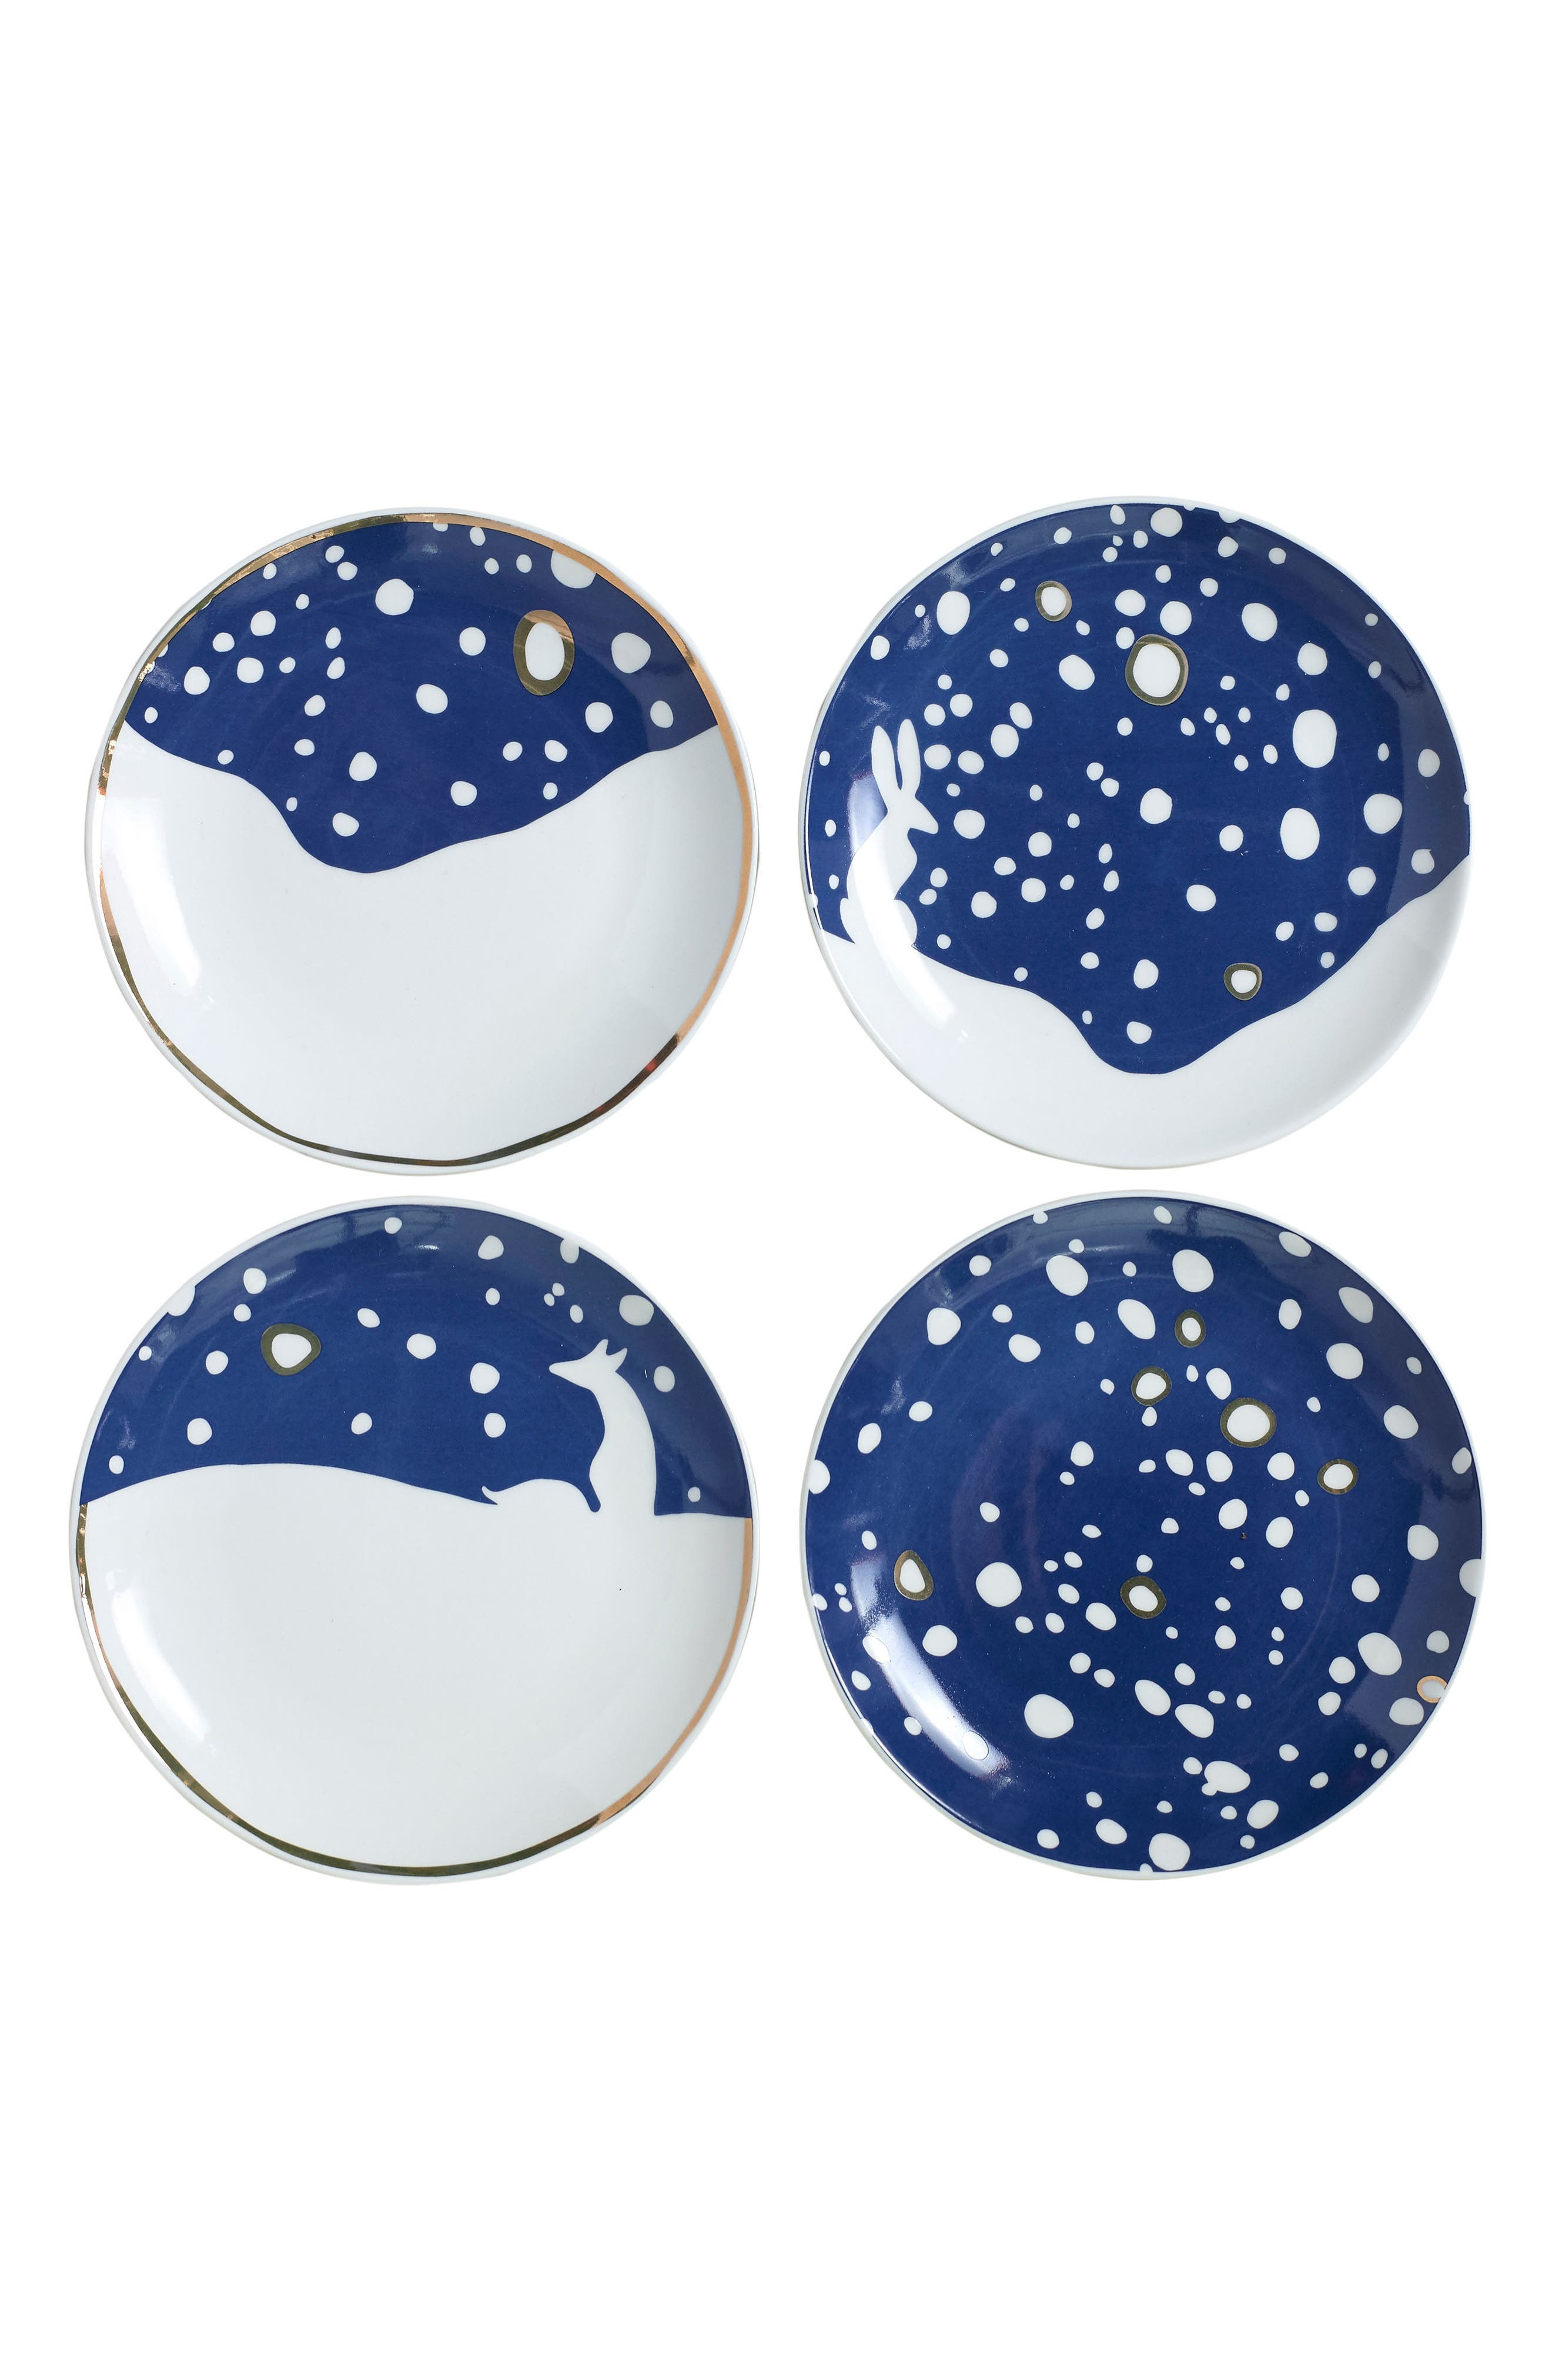 Main Image - Accent Decor Eric & Eloise Snowy Set of 4 Assorted Plates